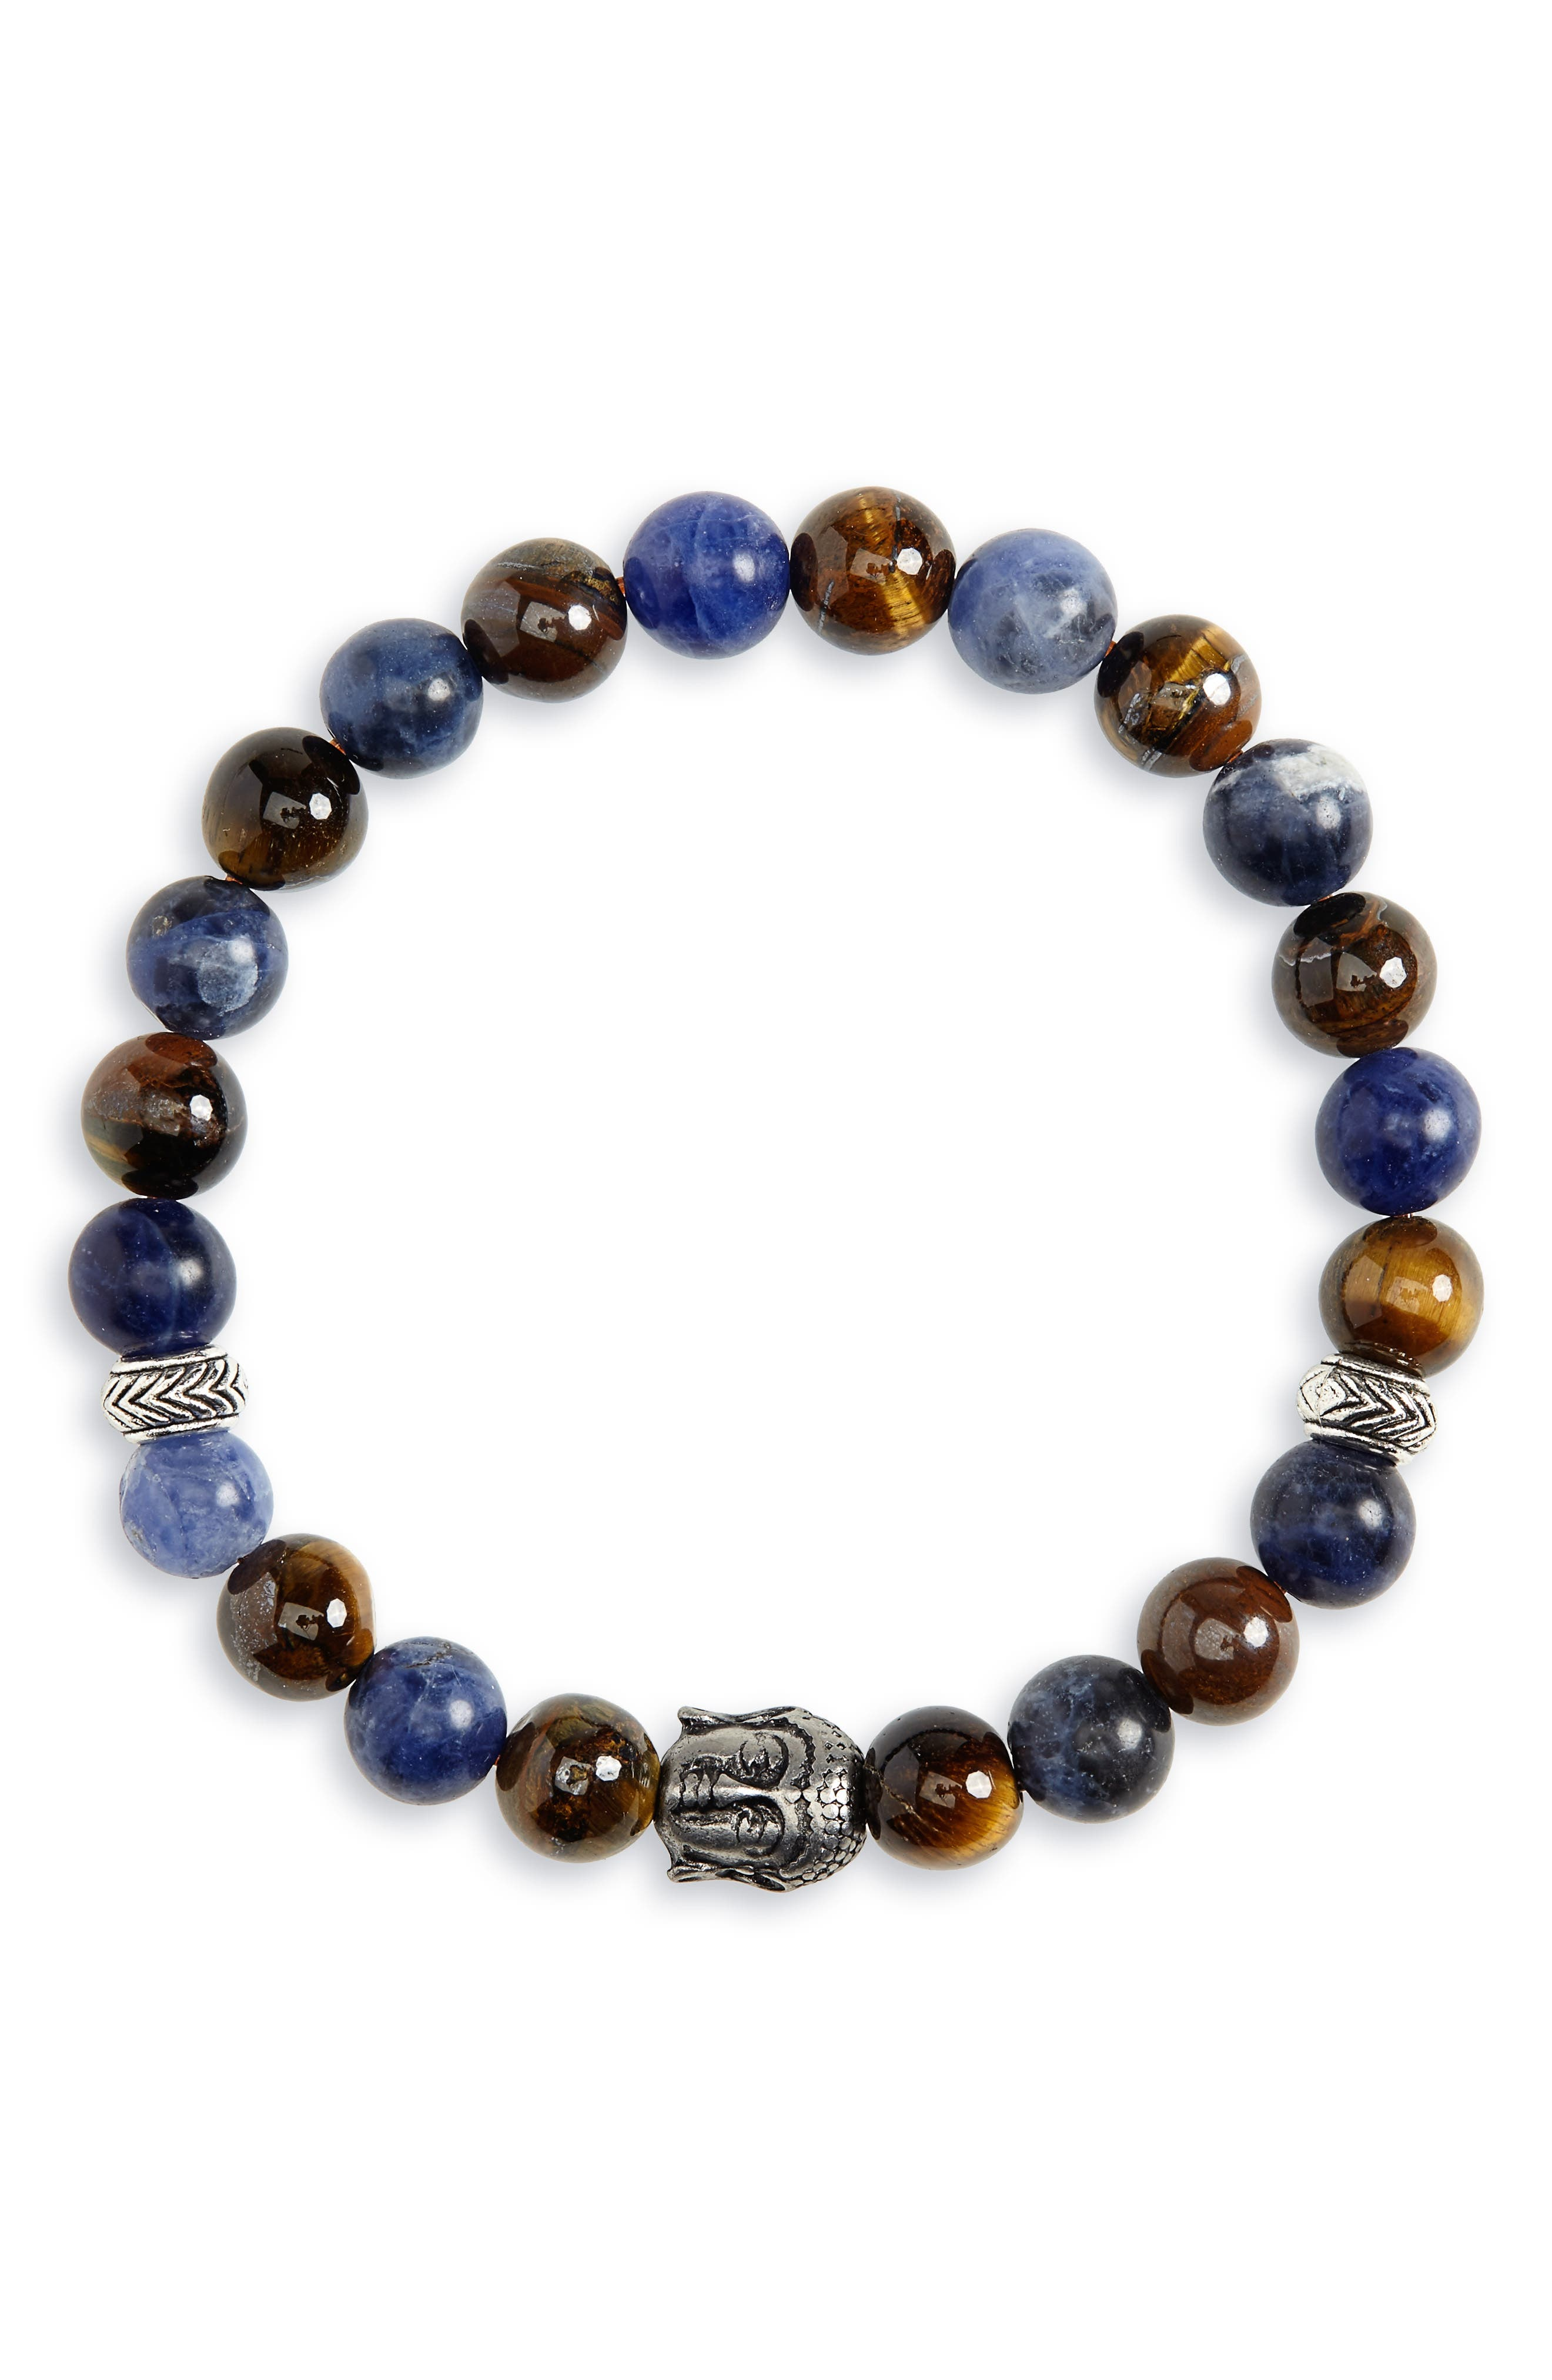 NORDSTROM MEN'S SHOP, Beaded Bracelet, Main thumbnail 1, color, BROWN/ NAVY